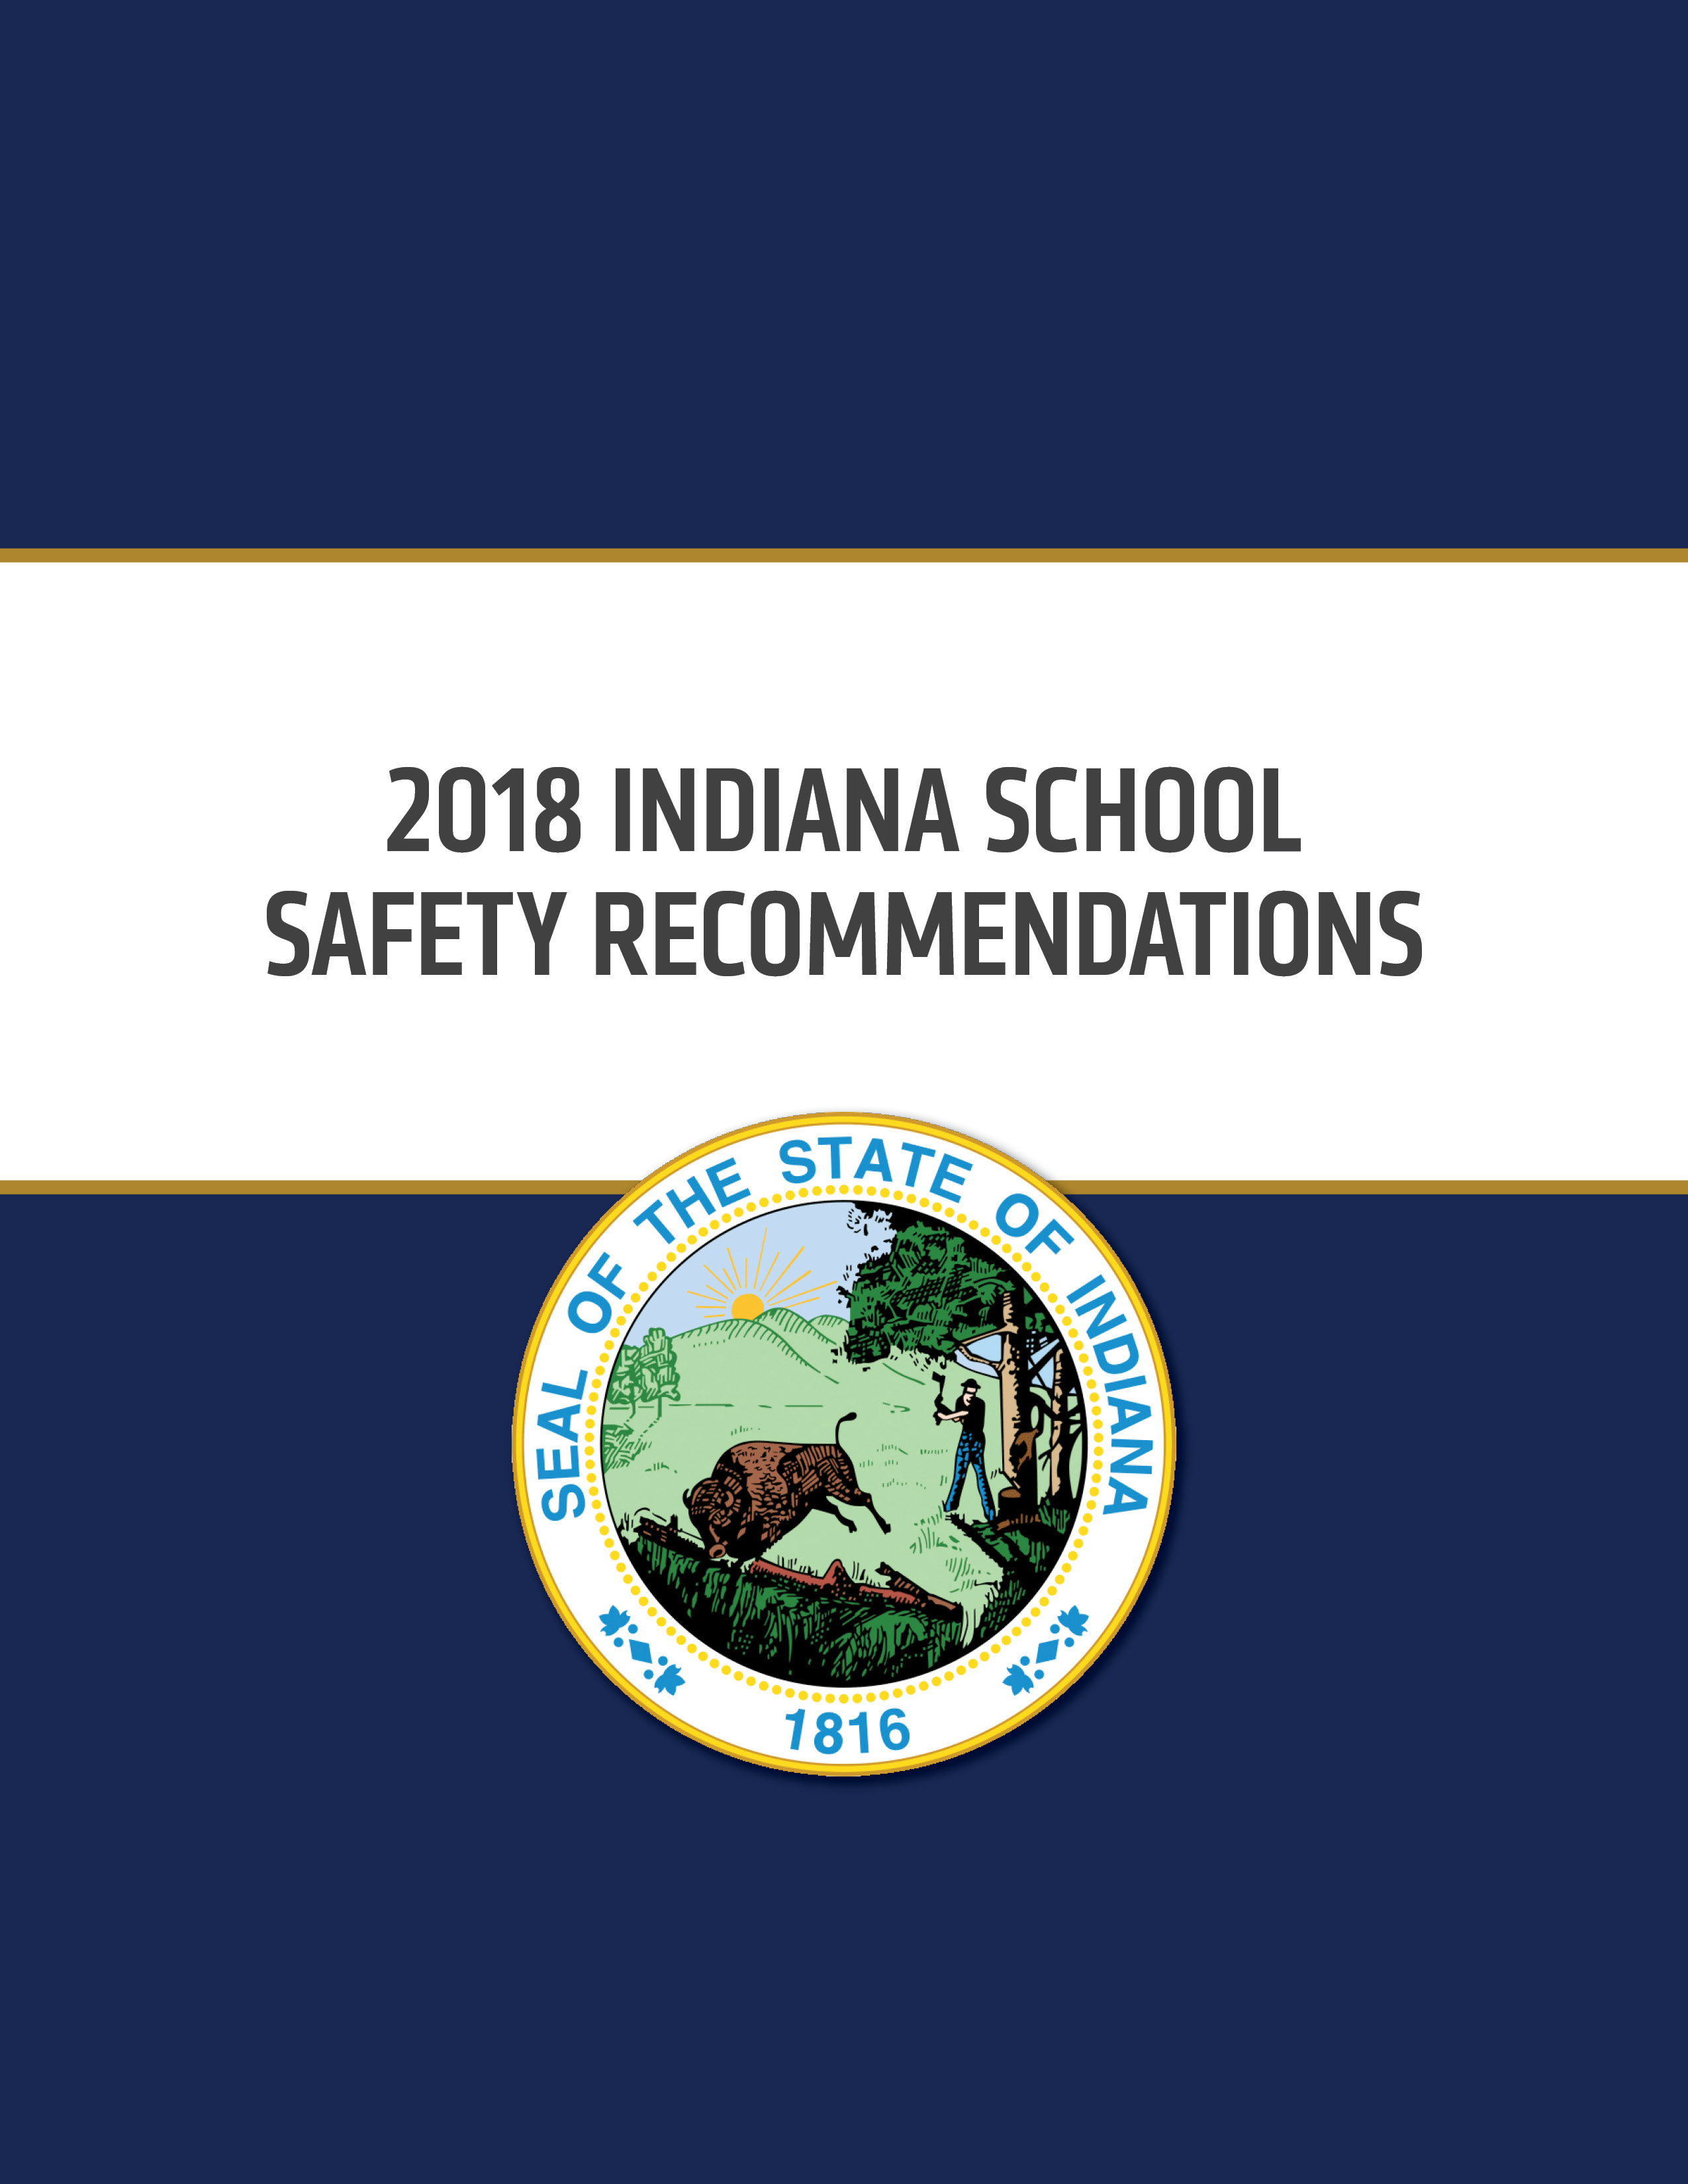 2018 Indiana School Safety Recommendations